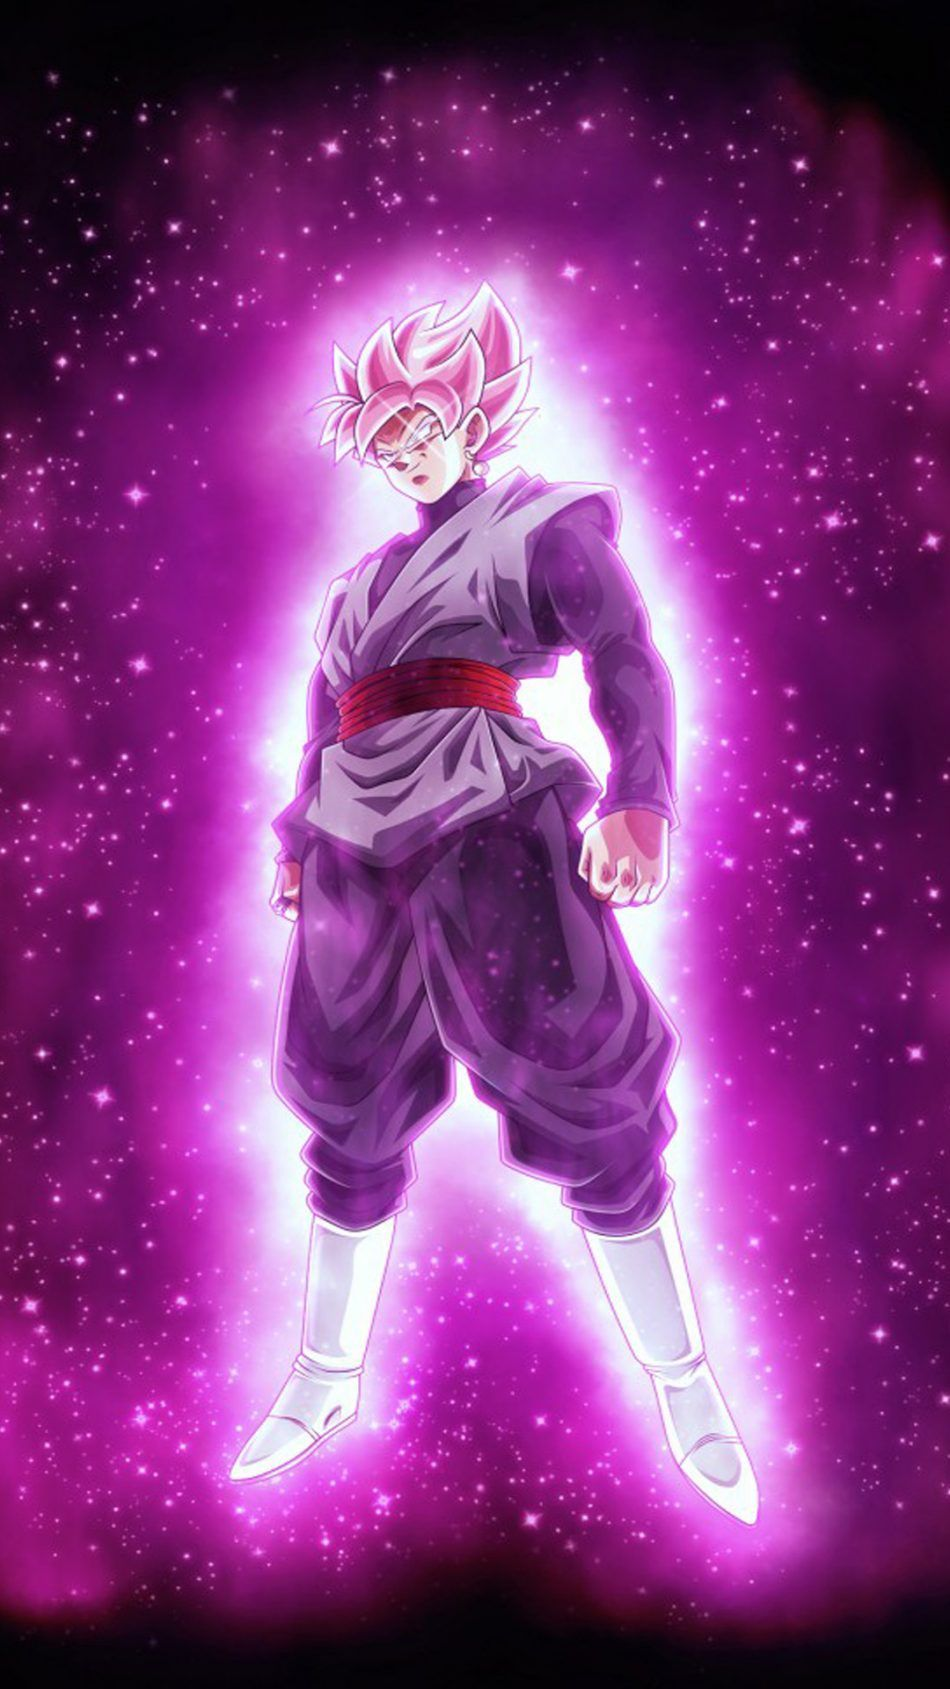 Dragon Ball Super Hd Mobile Wallpapers Pantalla De Goku